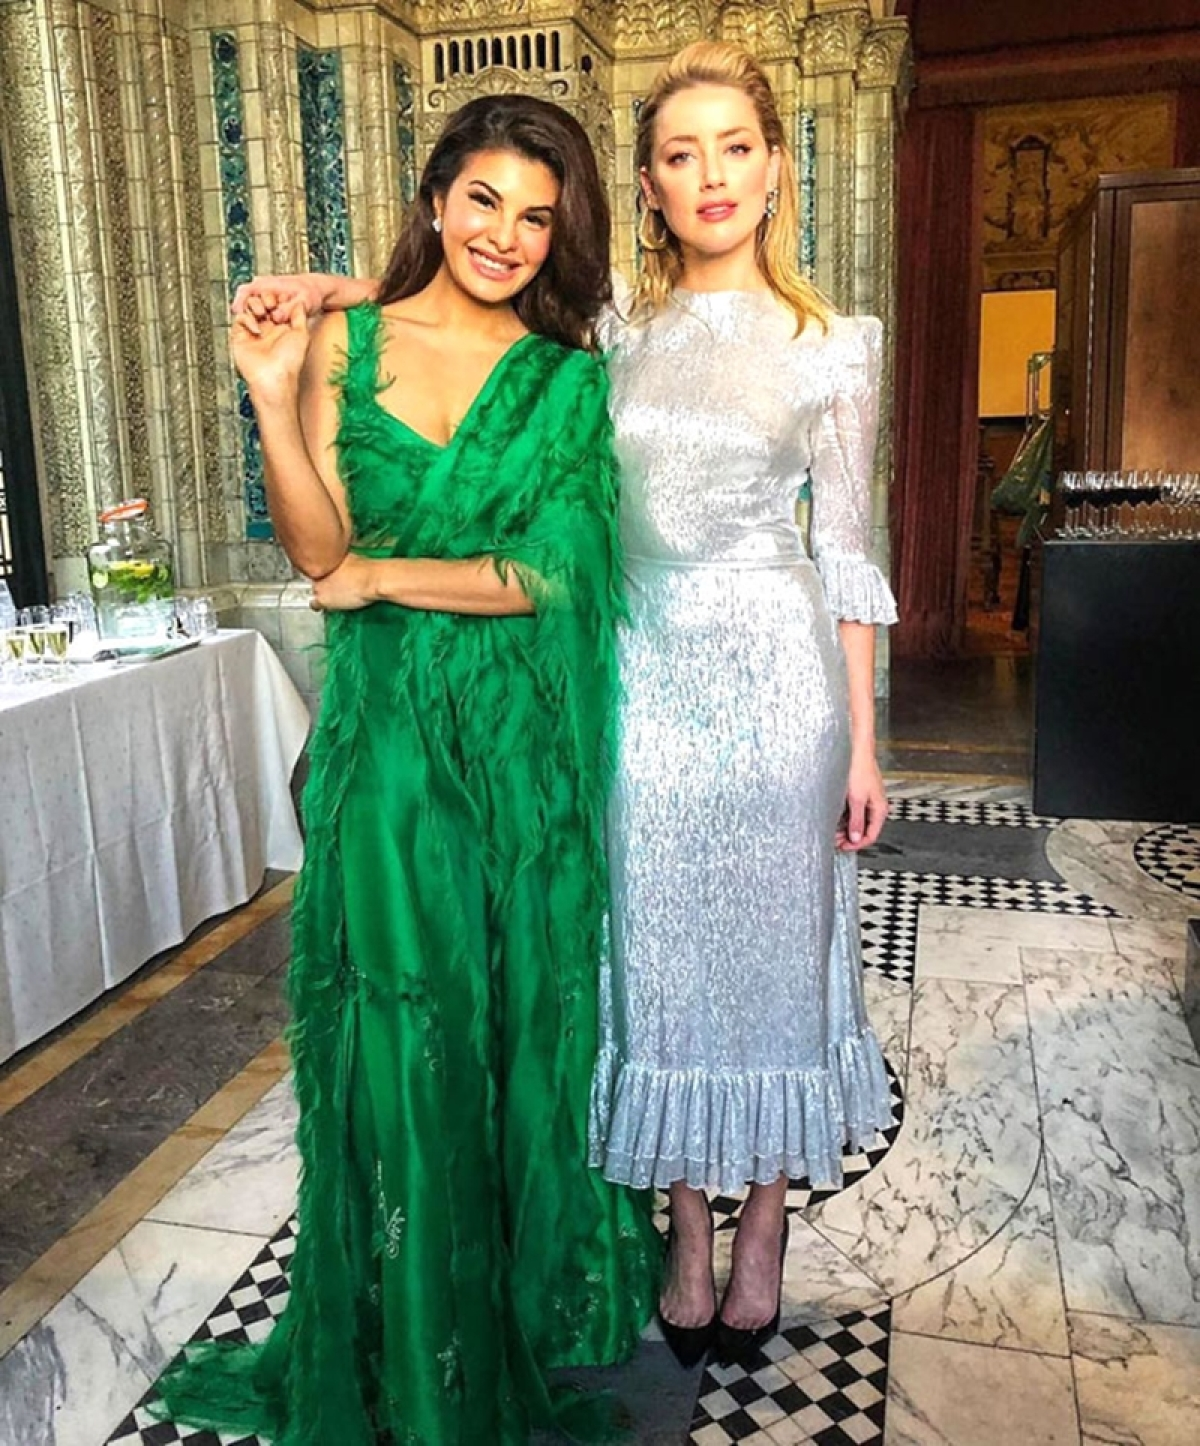 Jab Bollywood Met Hollywood! Jacqueline Fernandez enjoys fun time with 'Aquaman' actress Amber Heard; see pics